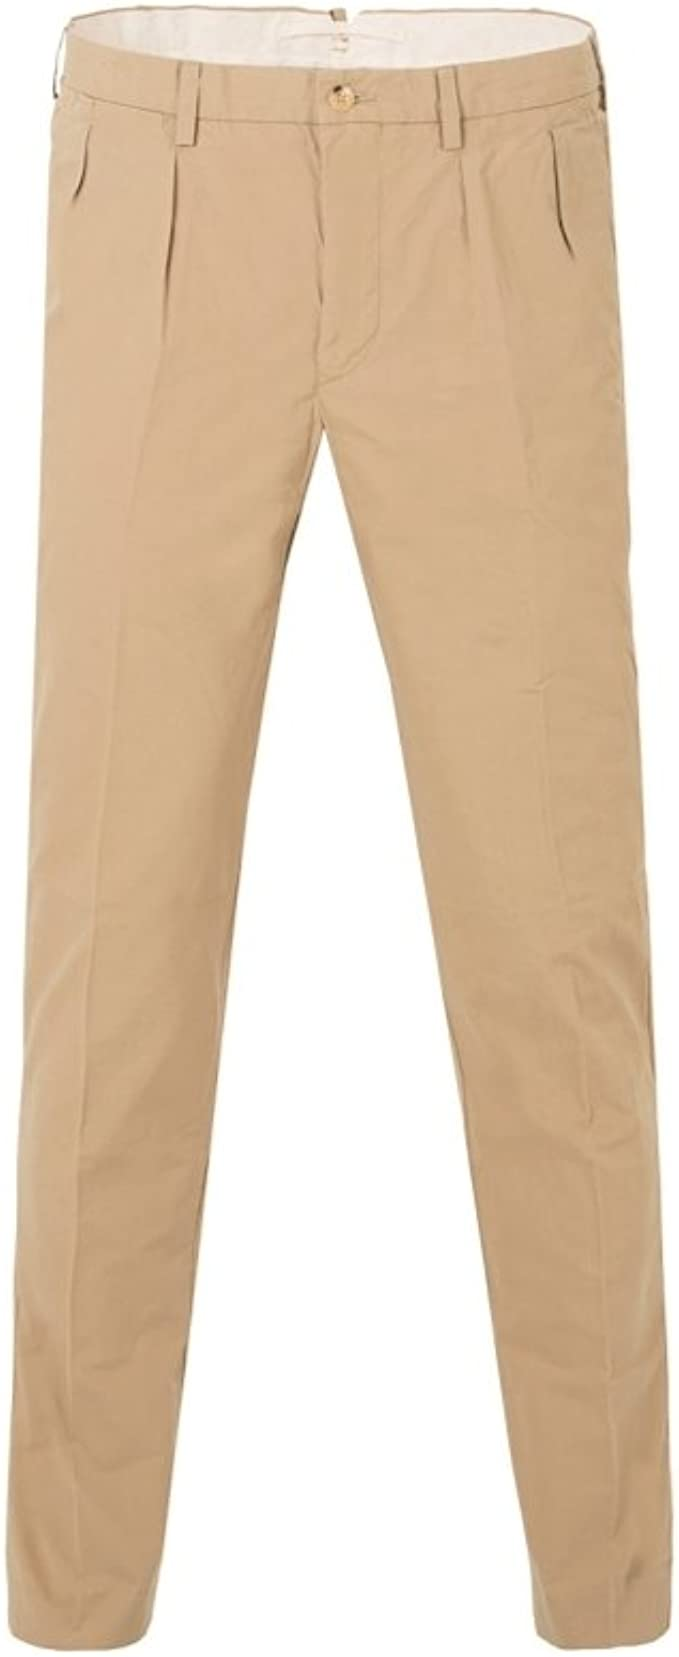 Men/'s Lee Khaki Chino Pants Pleated Front Size 38 x 34